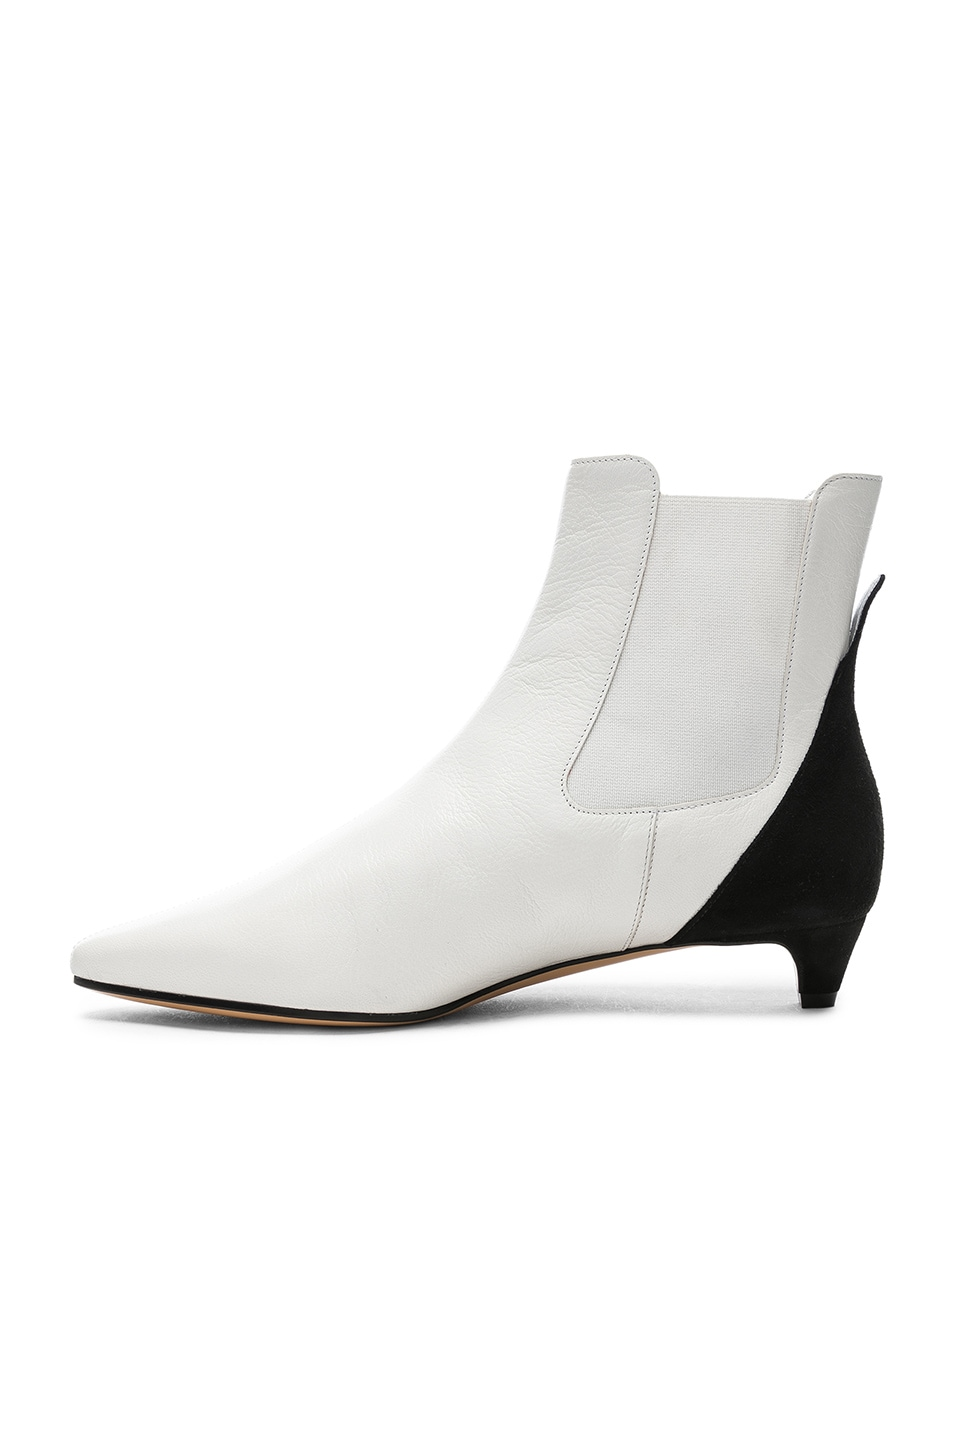 Image 5 of Givenchy GV3 Chelsea Ankle Boots in White & Black